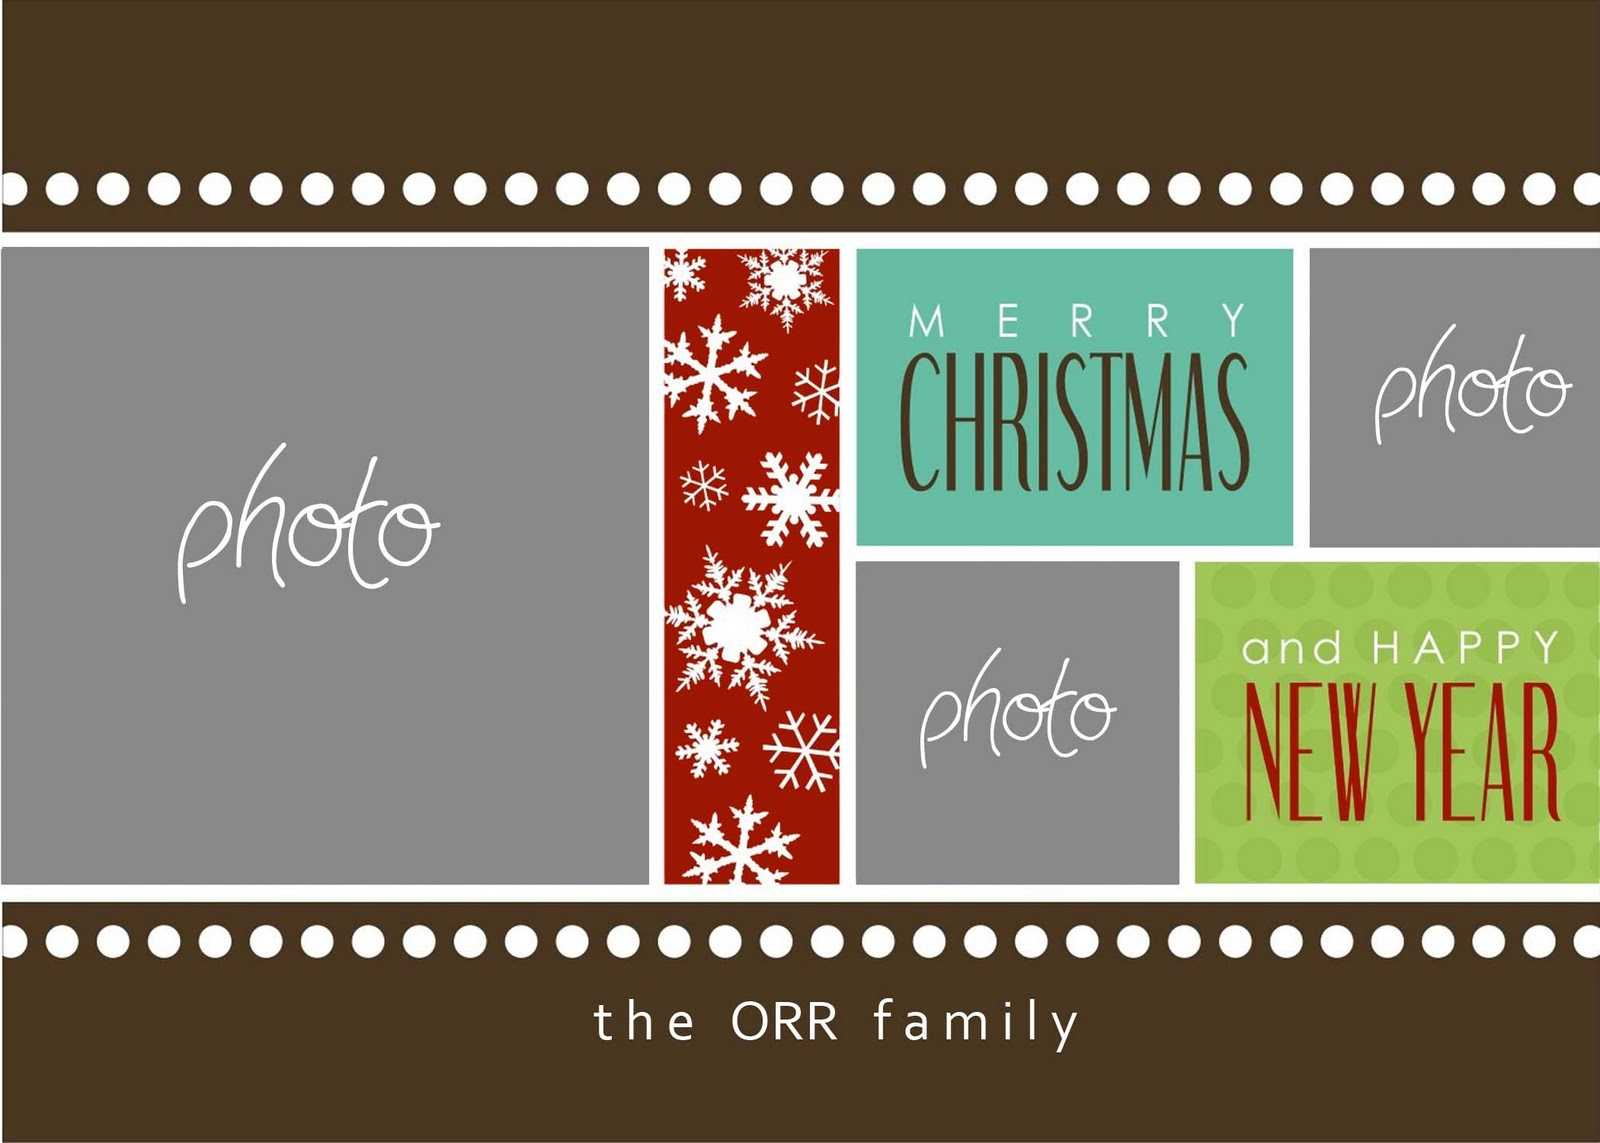 8 Free Photoshop Christmas Card Templates Images - Photoshop With Christmas Photo Card Templates Photoshop